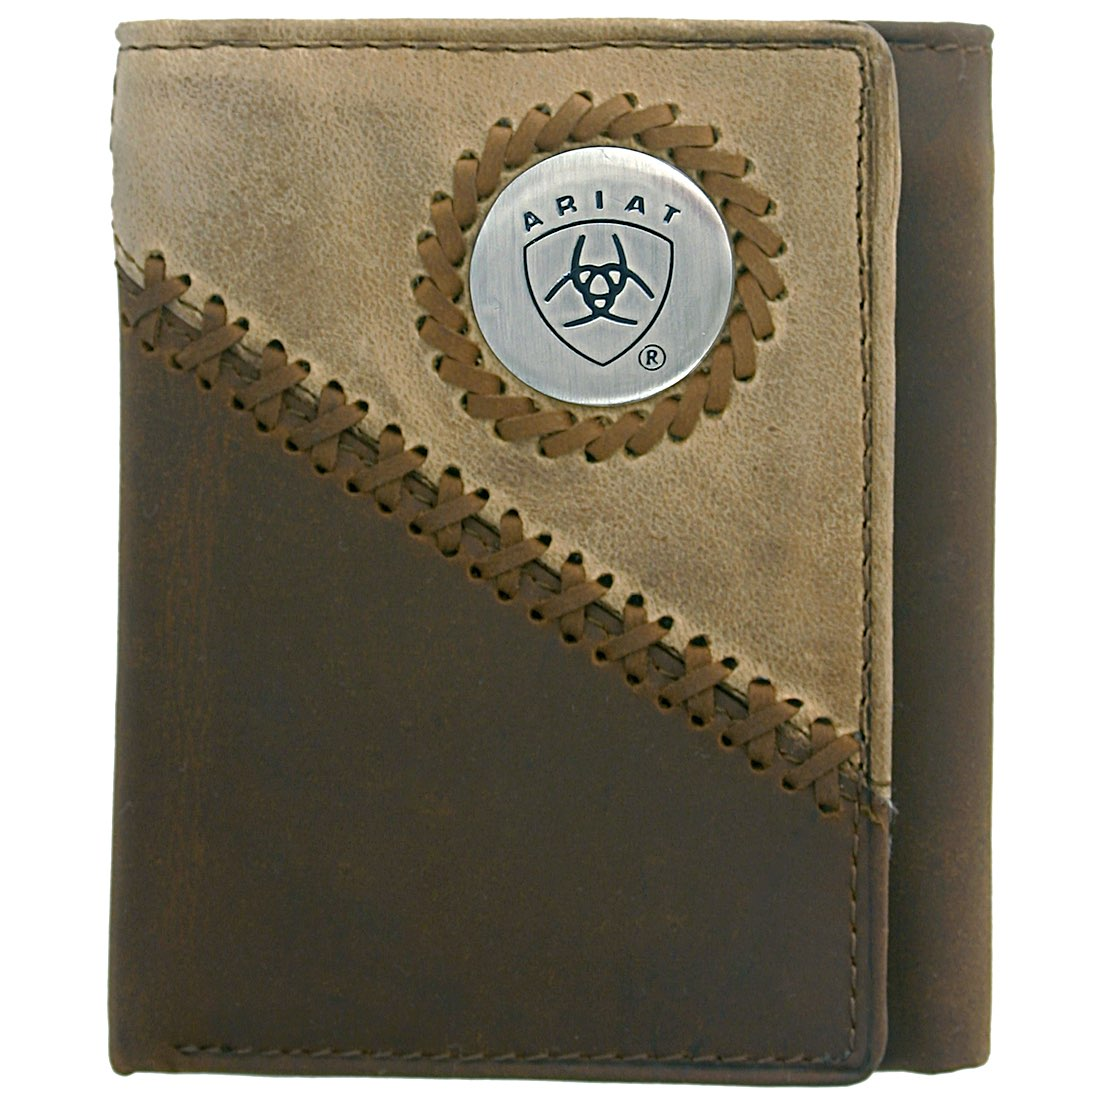 Tri fold Wallet-Brown / Fawn WLT3100A